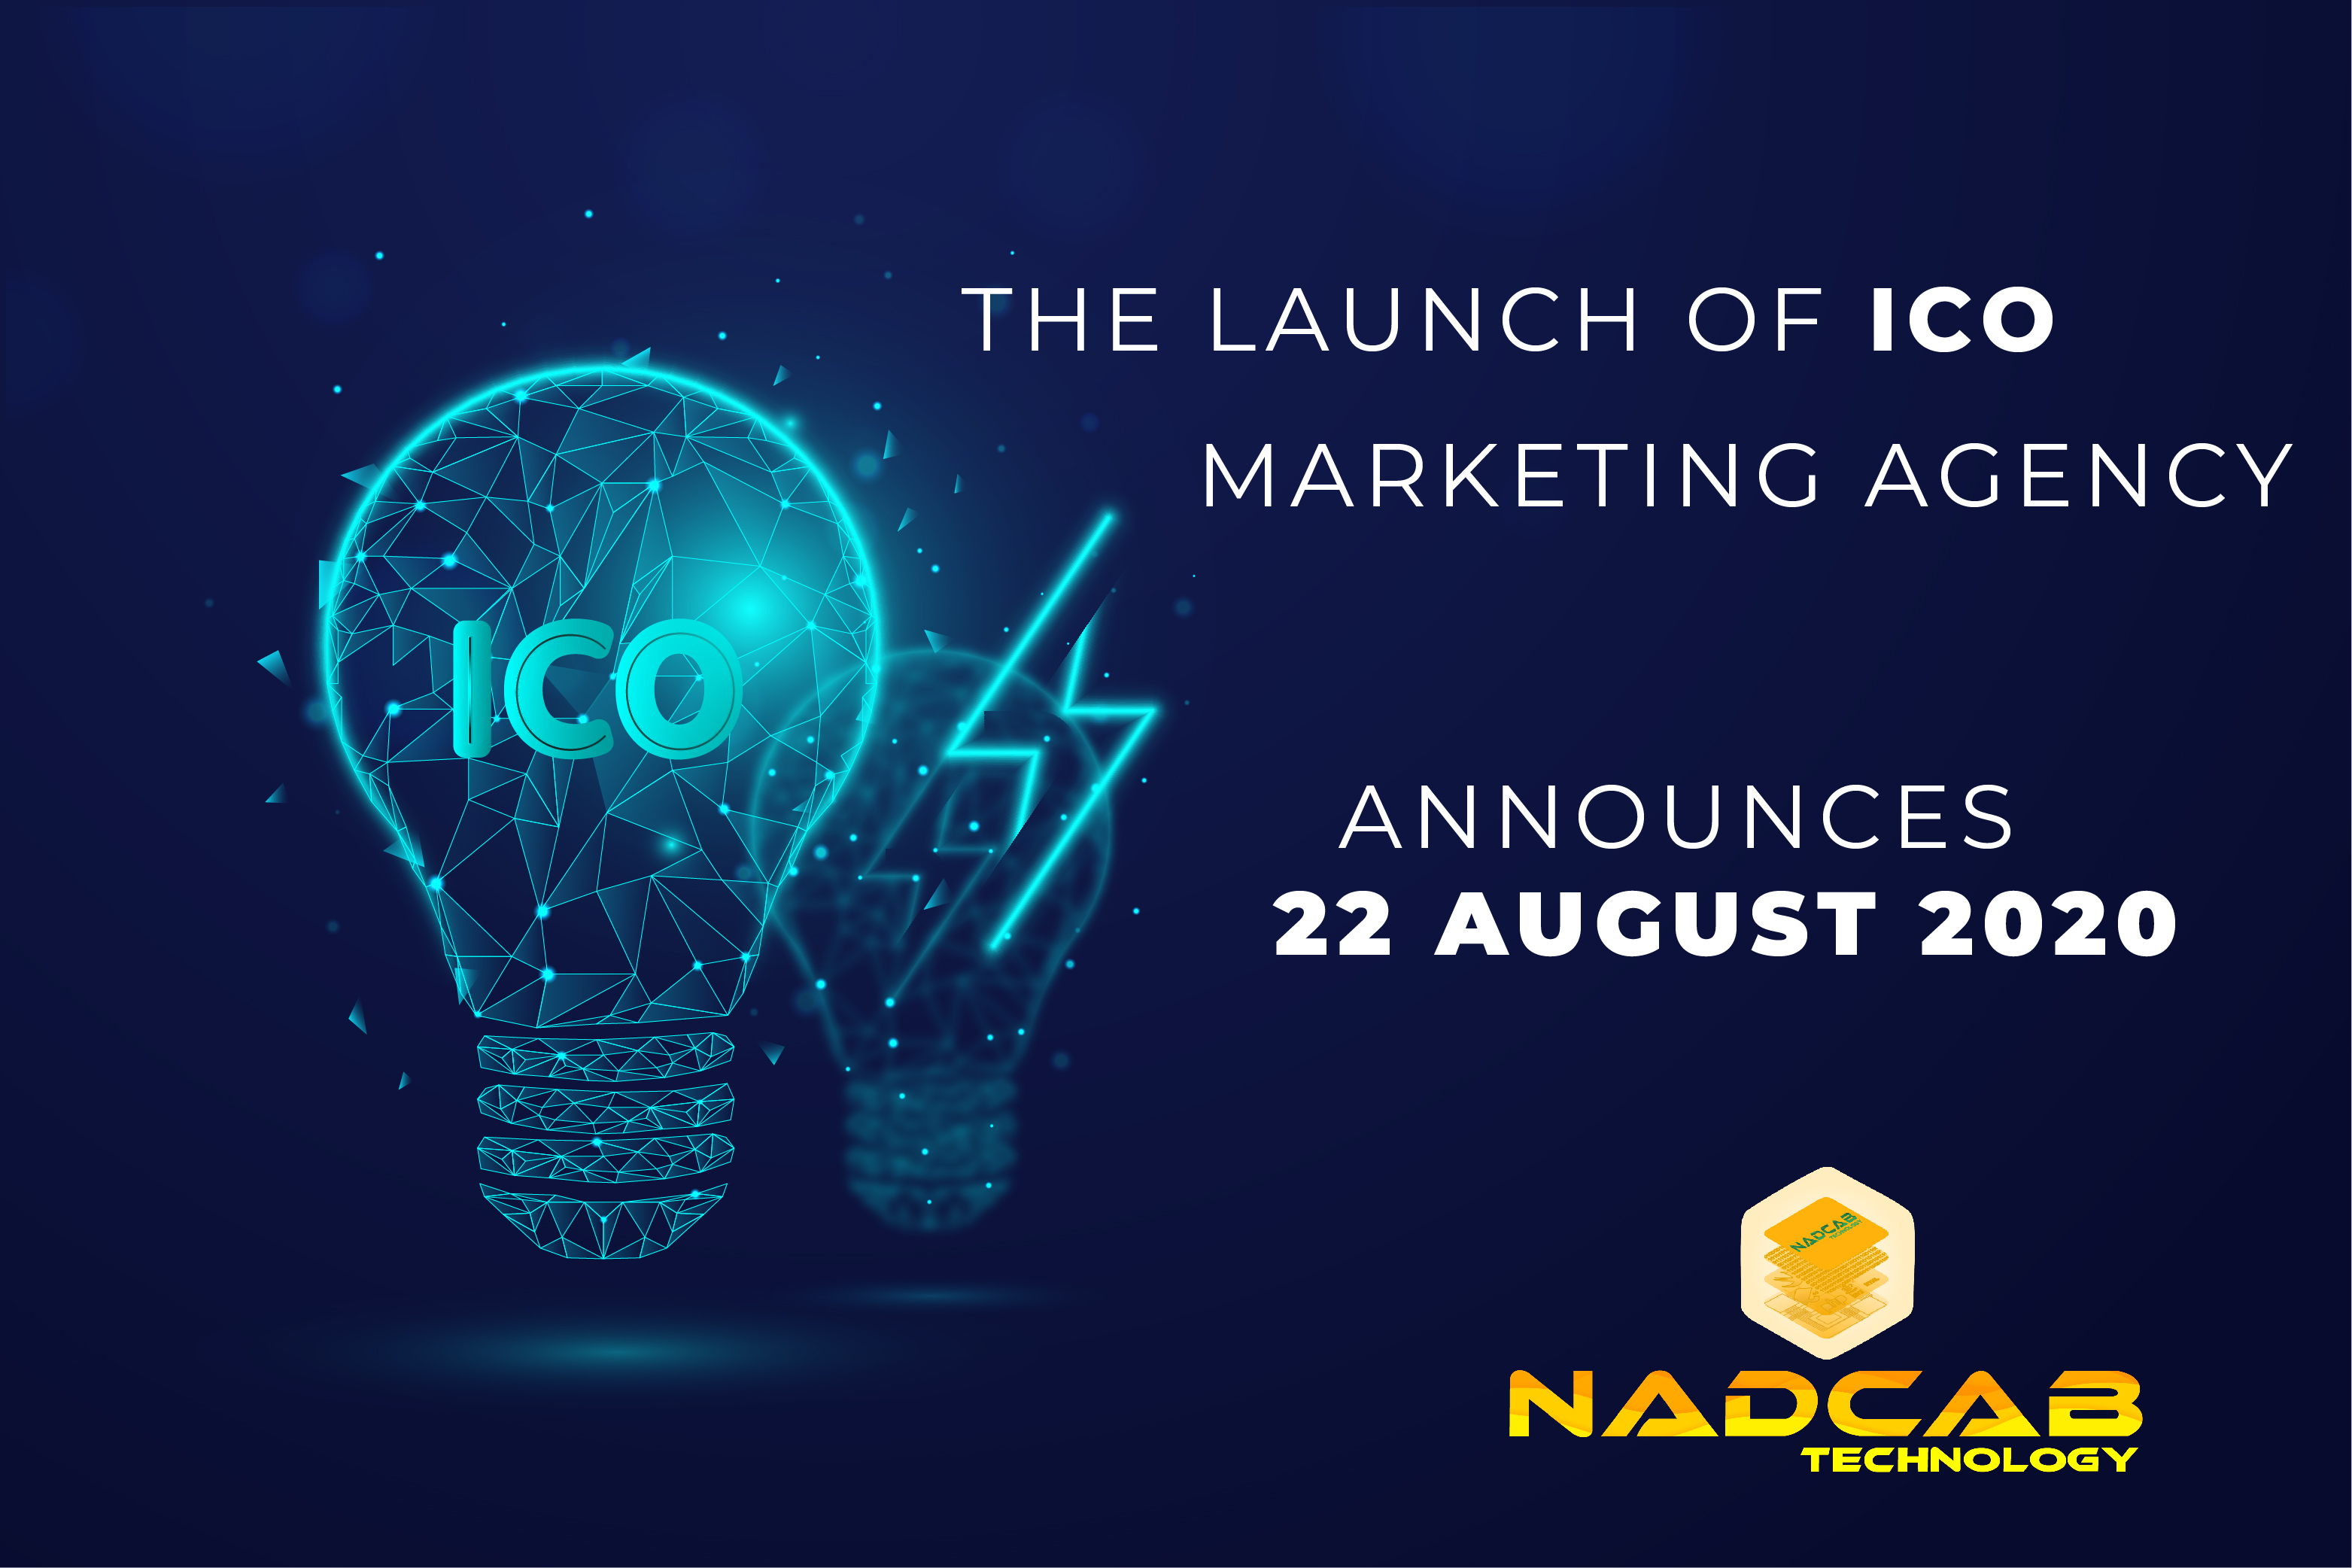 the-launch-of-ico-marketing-agency-announce-22augu